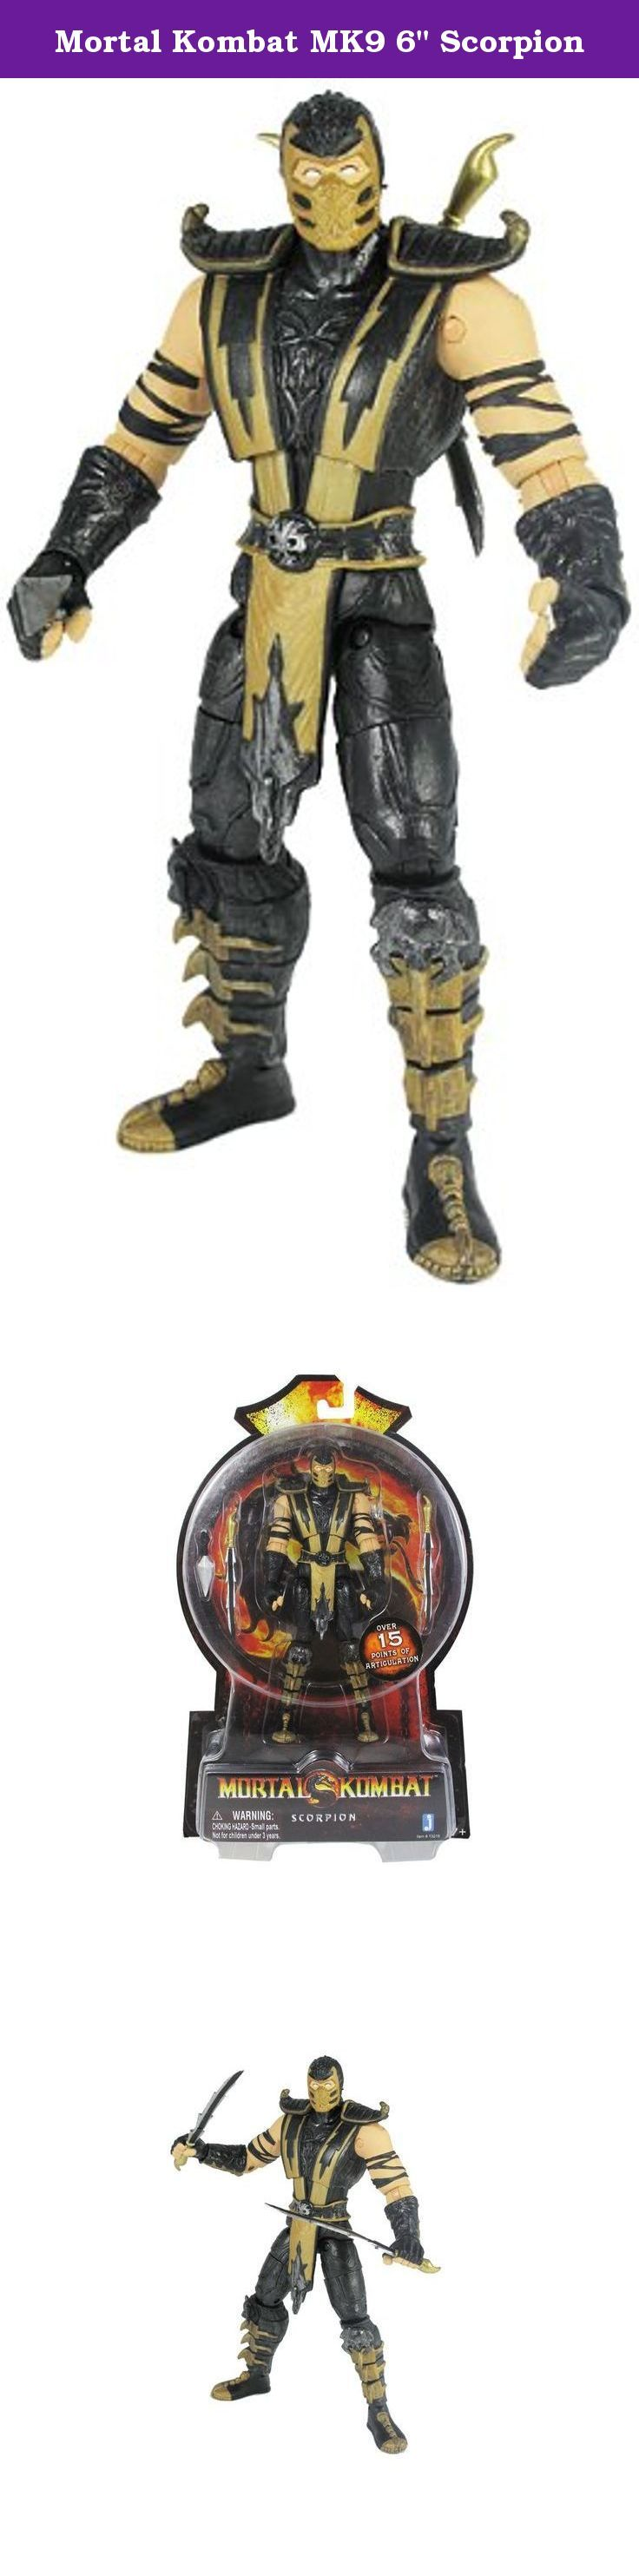 """Mortal Kombat MK9 6"""" Scorpion. Mortal Kombat 9 returns to its roots with these 6-inch tall, fully detailed and articulated action figures of popular characters from previous Mortal Kombat games 1, 2, and 3. Scorpion is arguably one of the most popular characters in the Mortal Kombat series."""